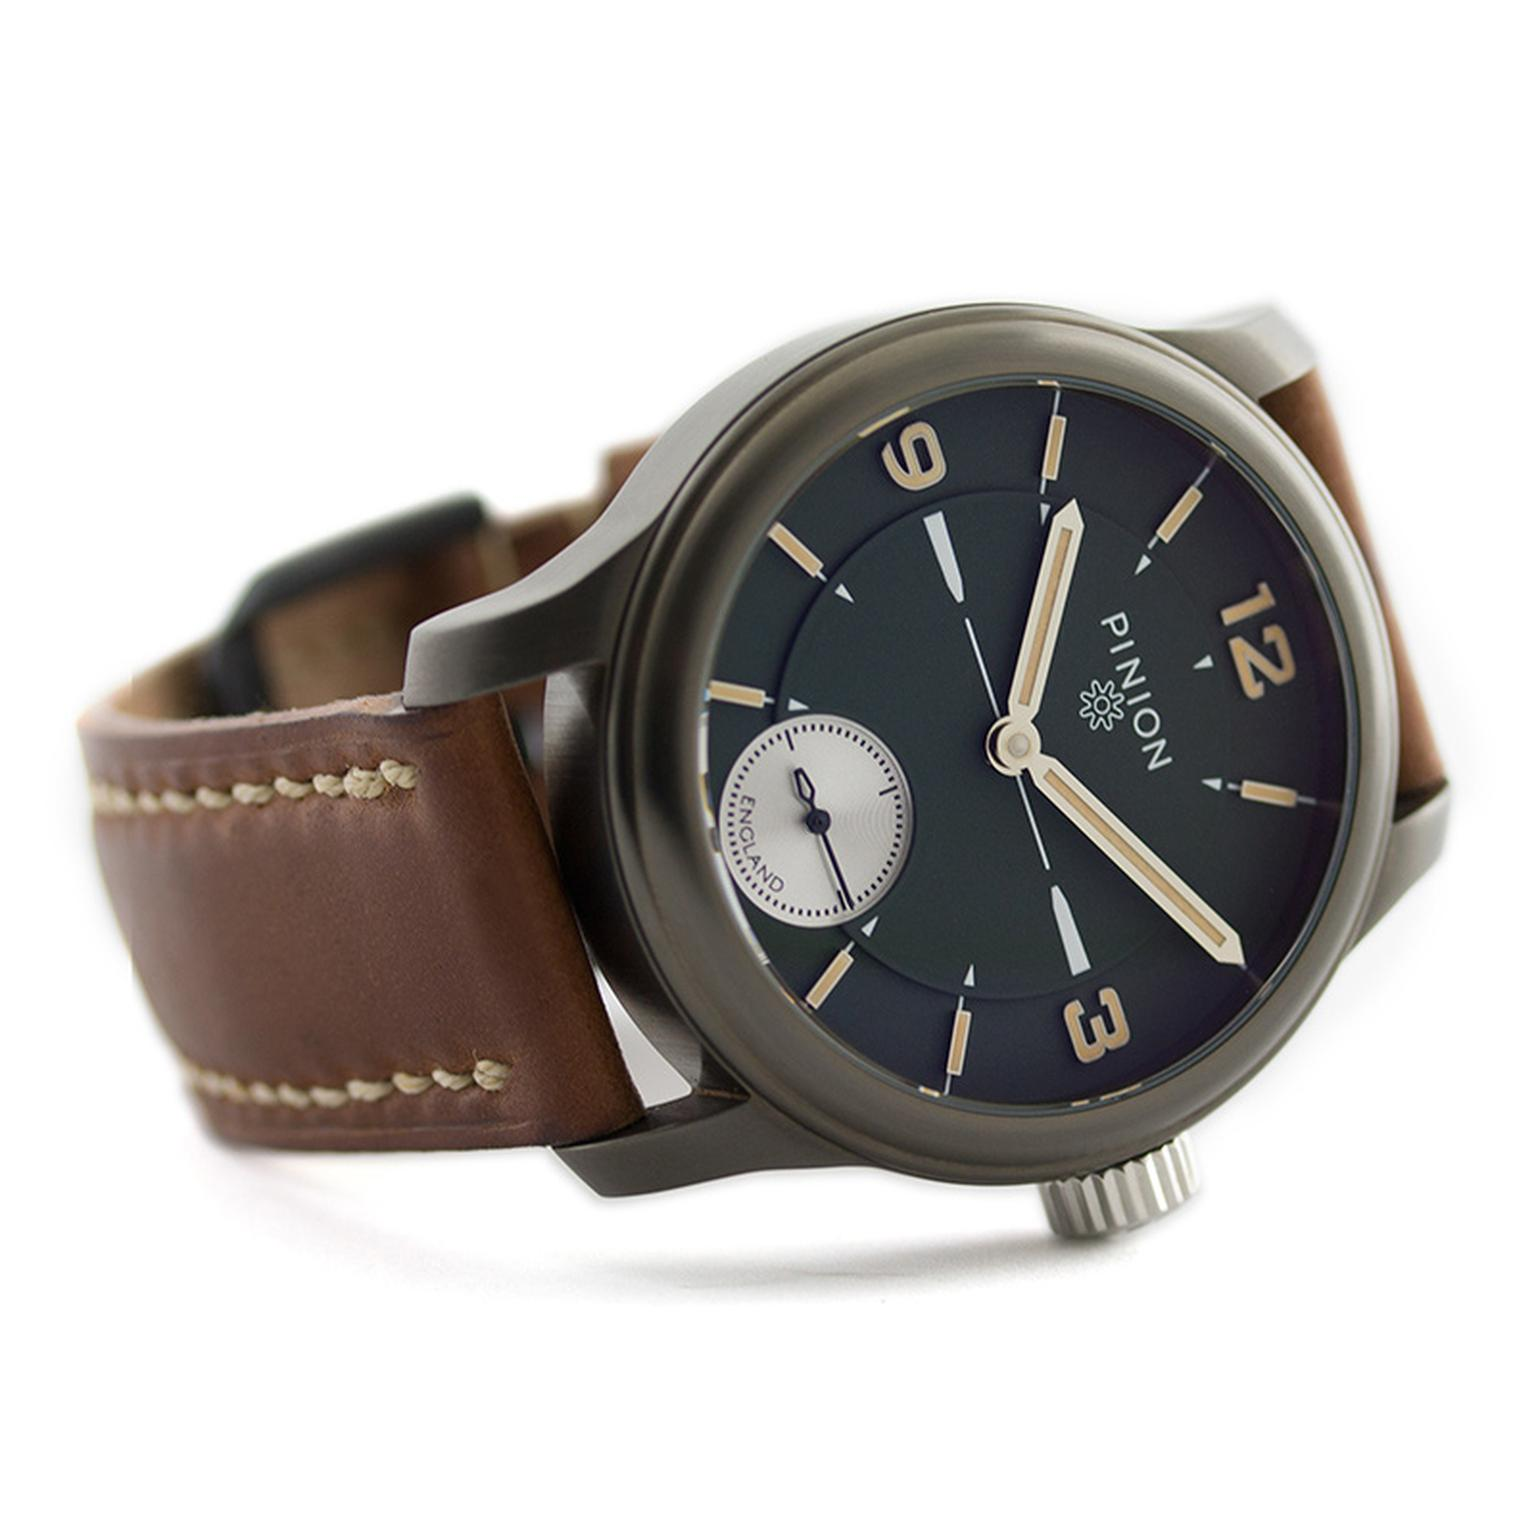 h pinion axis the watchnerd age bronze watches